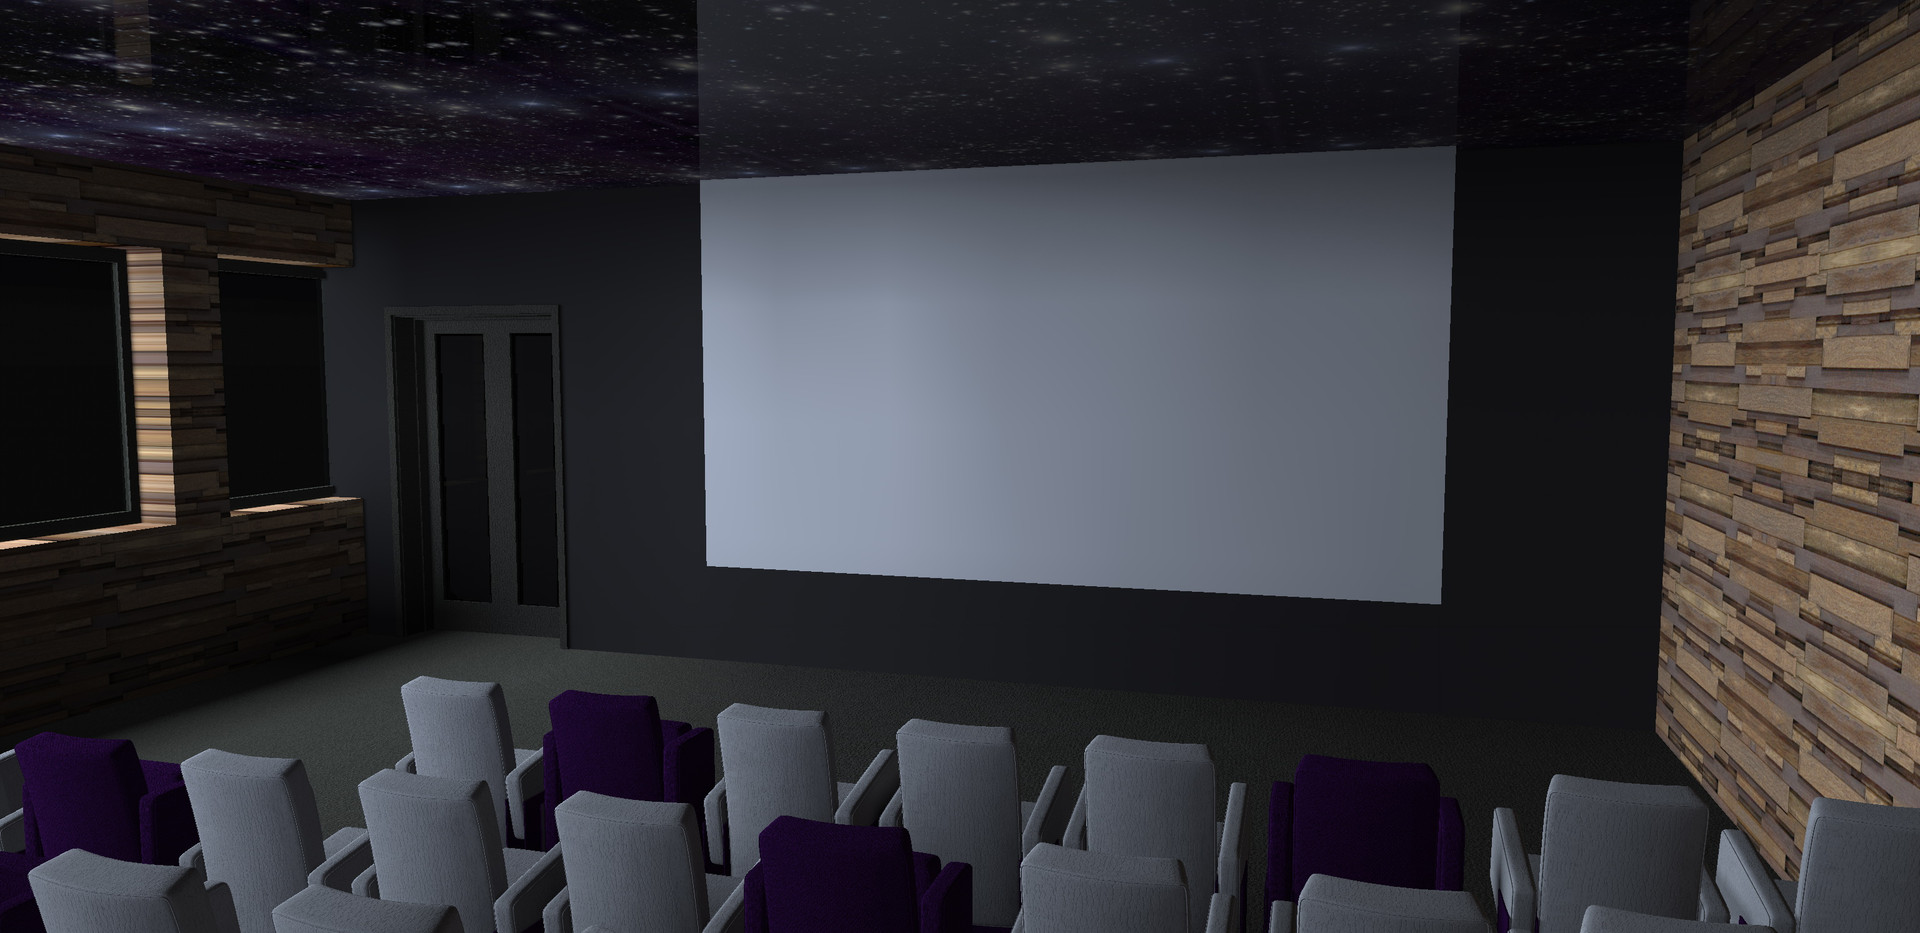 CINEMA projektas / CINEMA project